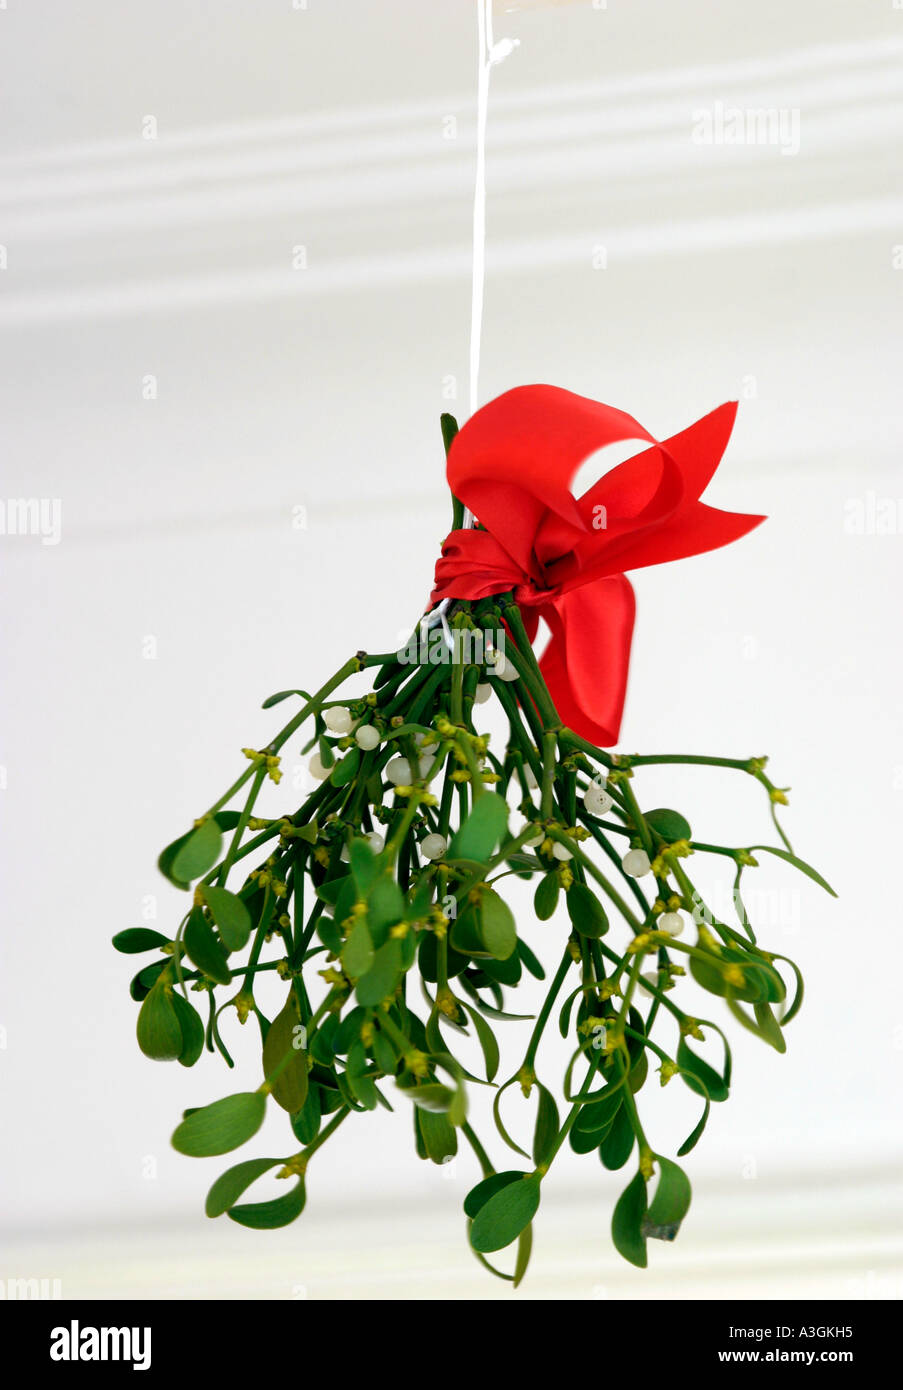 mistletoe traditional christmas decoration viscum album parasitic evergreen shrub